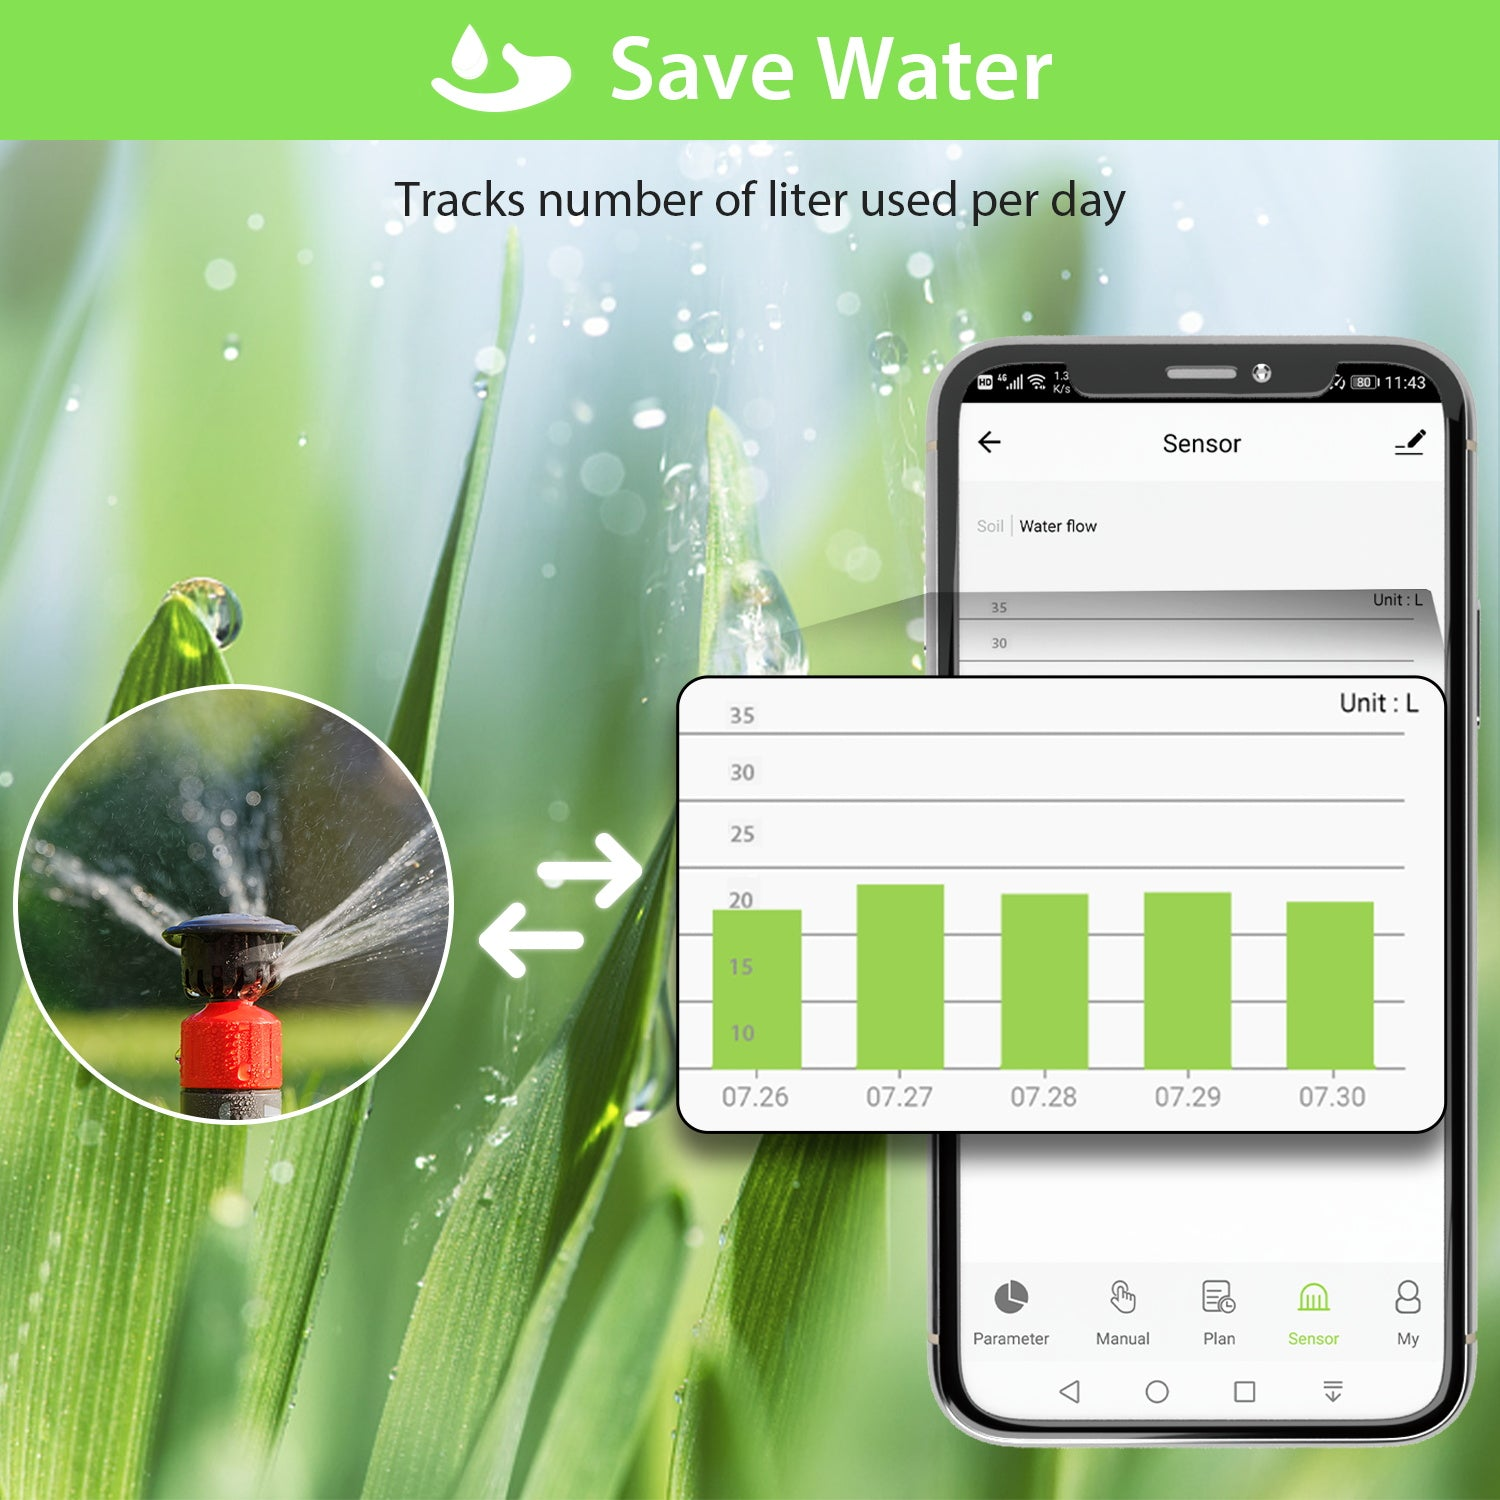 Rain Delay Digital Hose Faucet Water Timer for Drip and Mist Irrigation Systems Auto Manual Mode Know The Flow XpertMatic Bluetooth Sprinkler Timer Programmable for Garden Lawn with Filter Washer